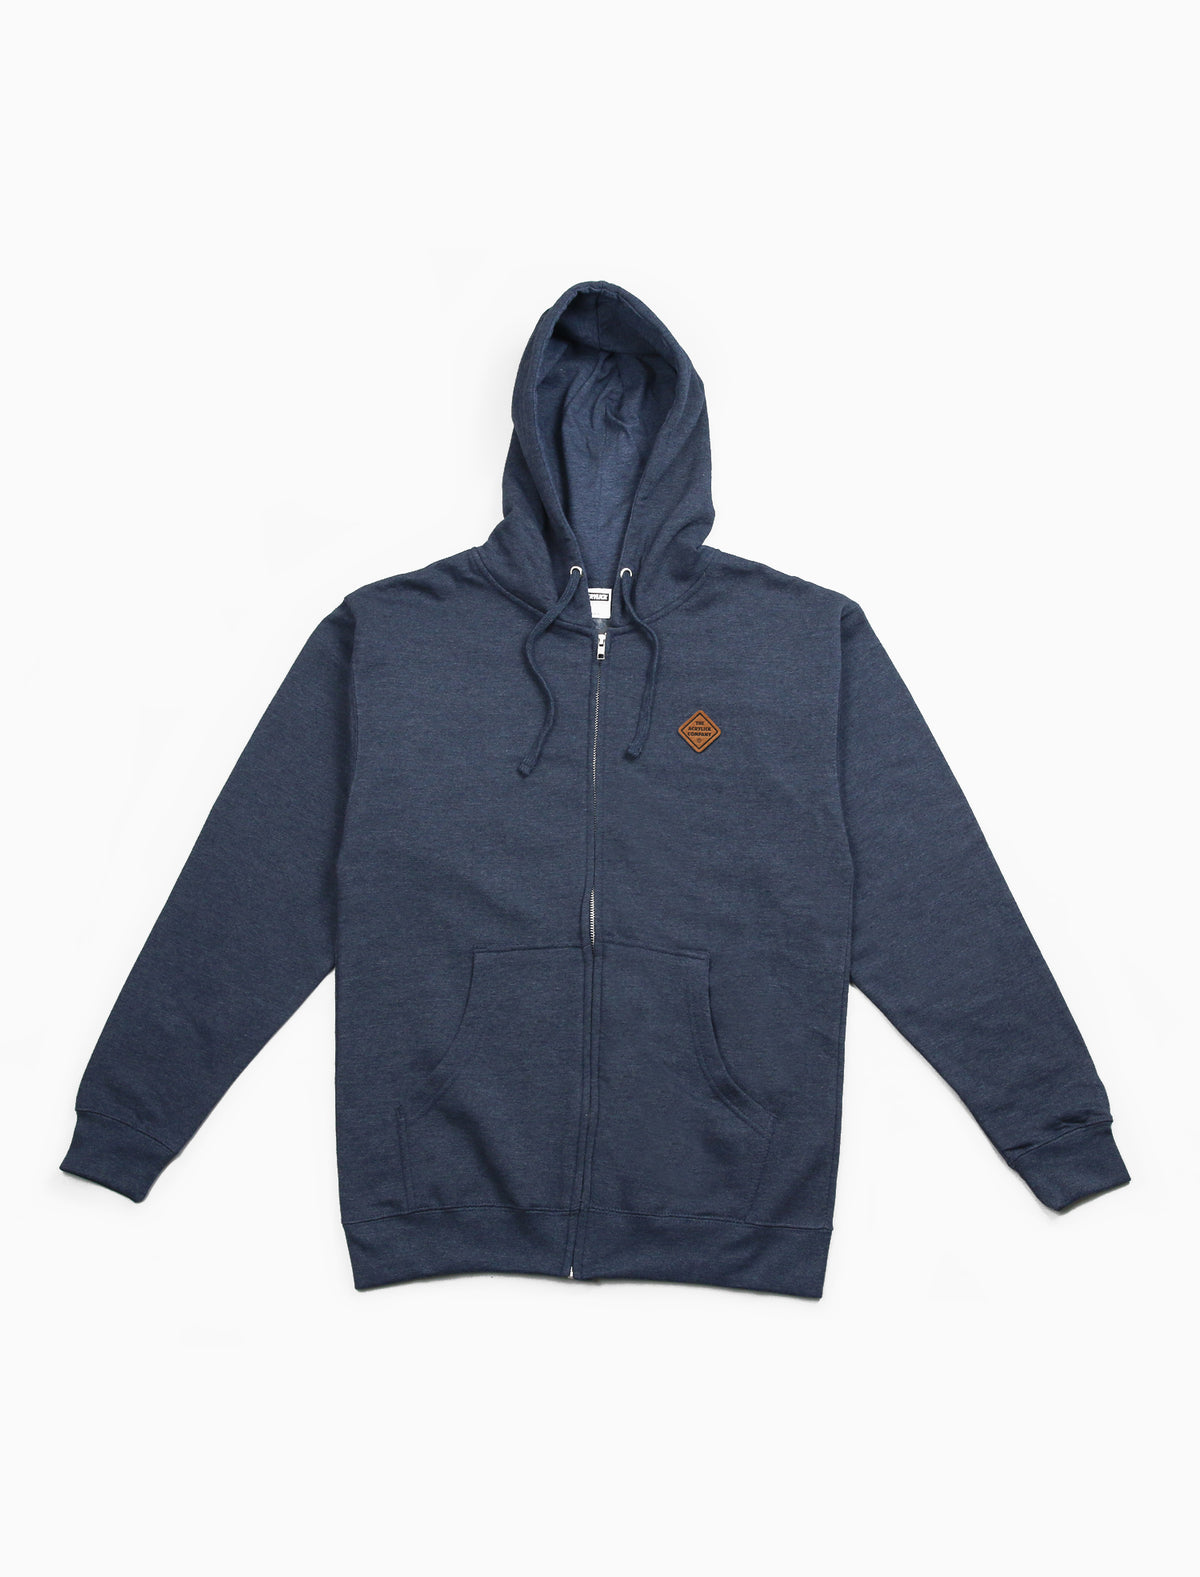 Midnighters Zipper Hoodie (2207711068271)